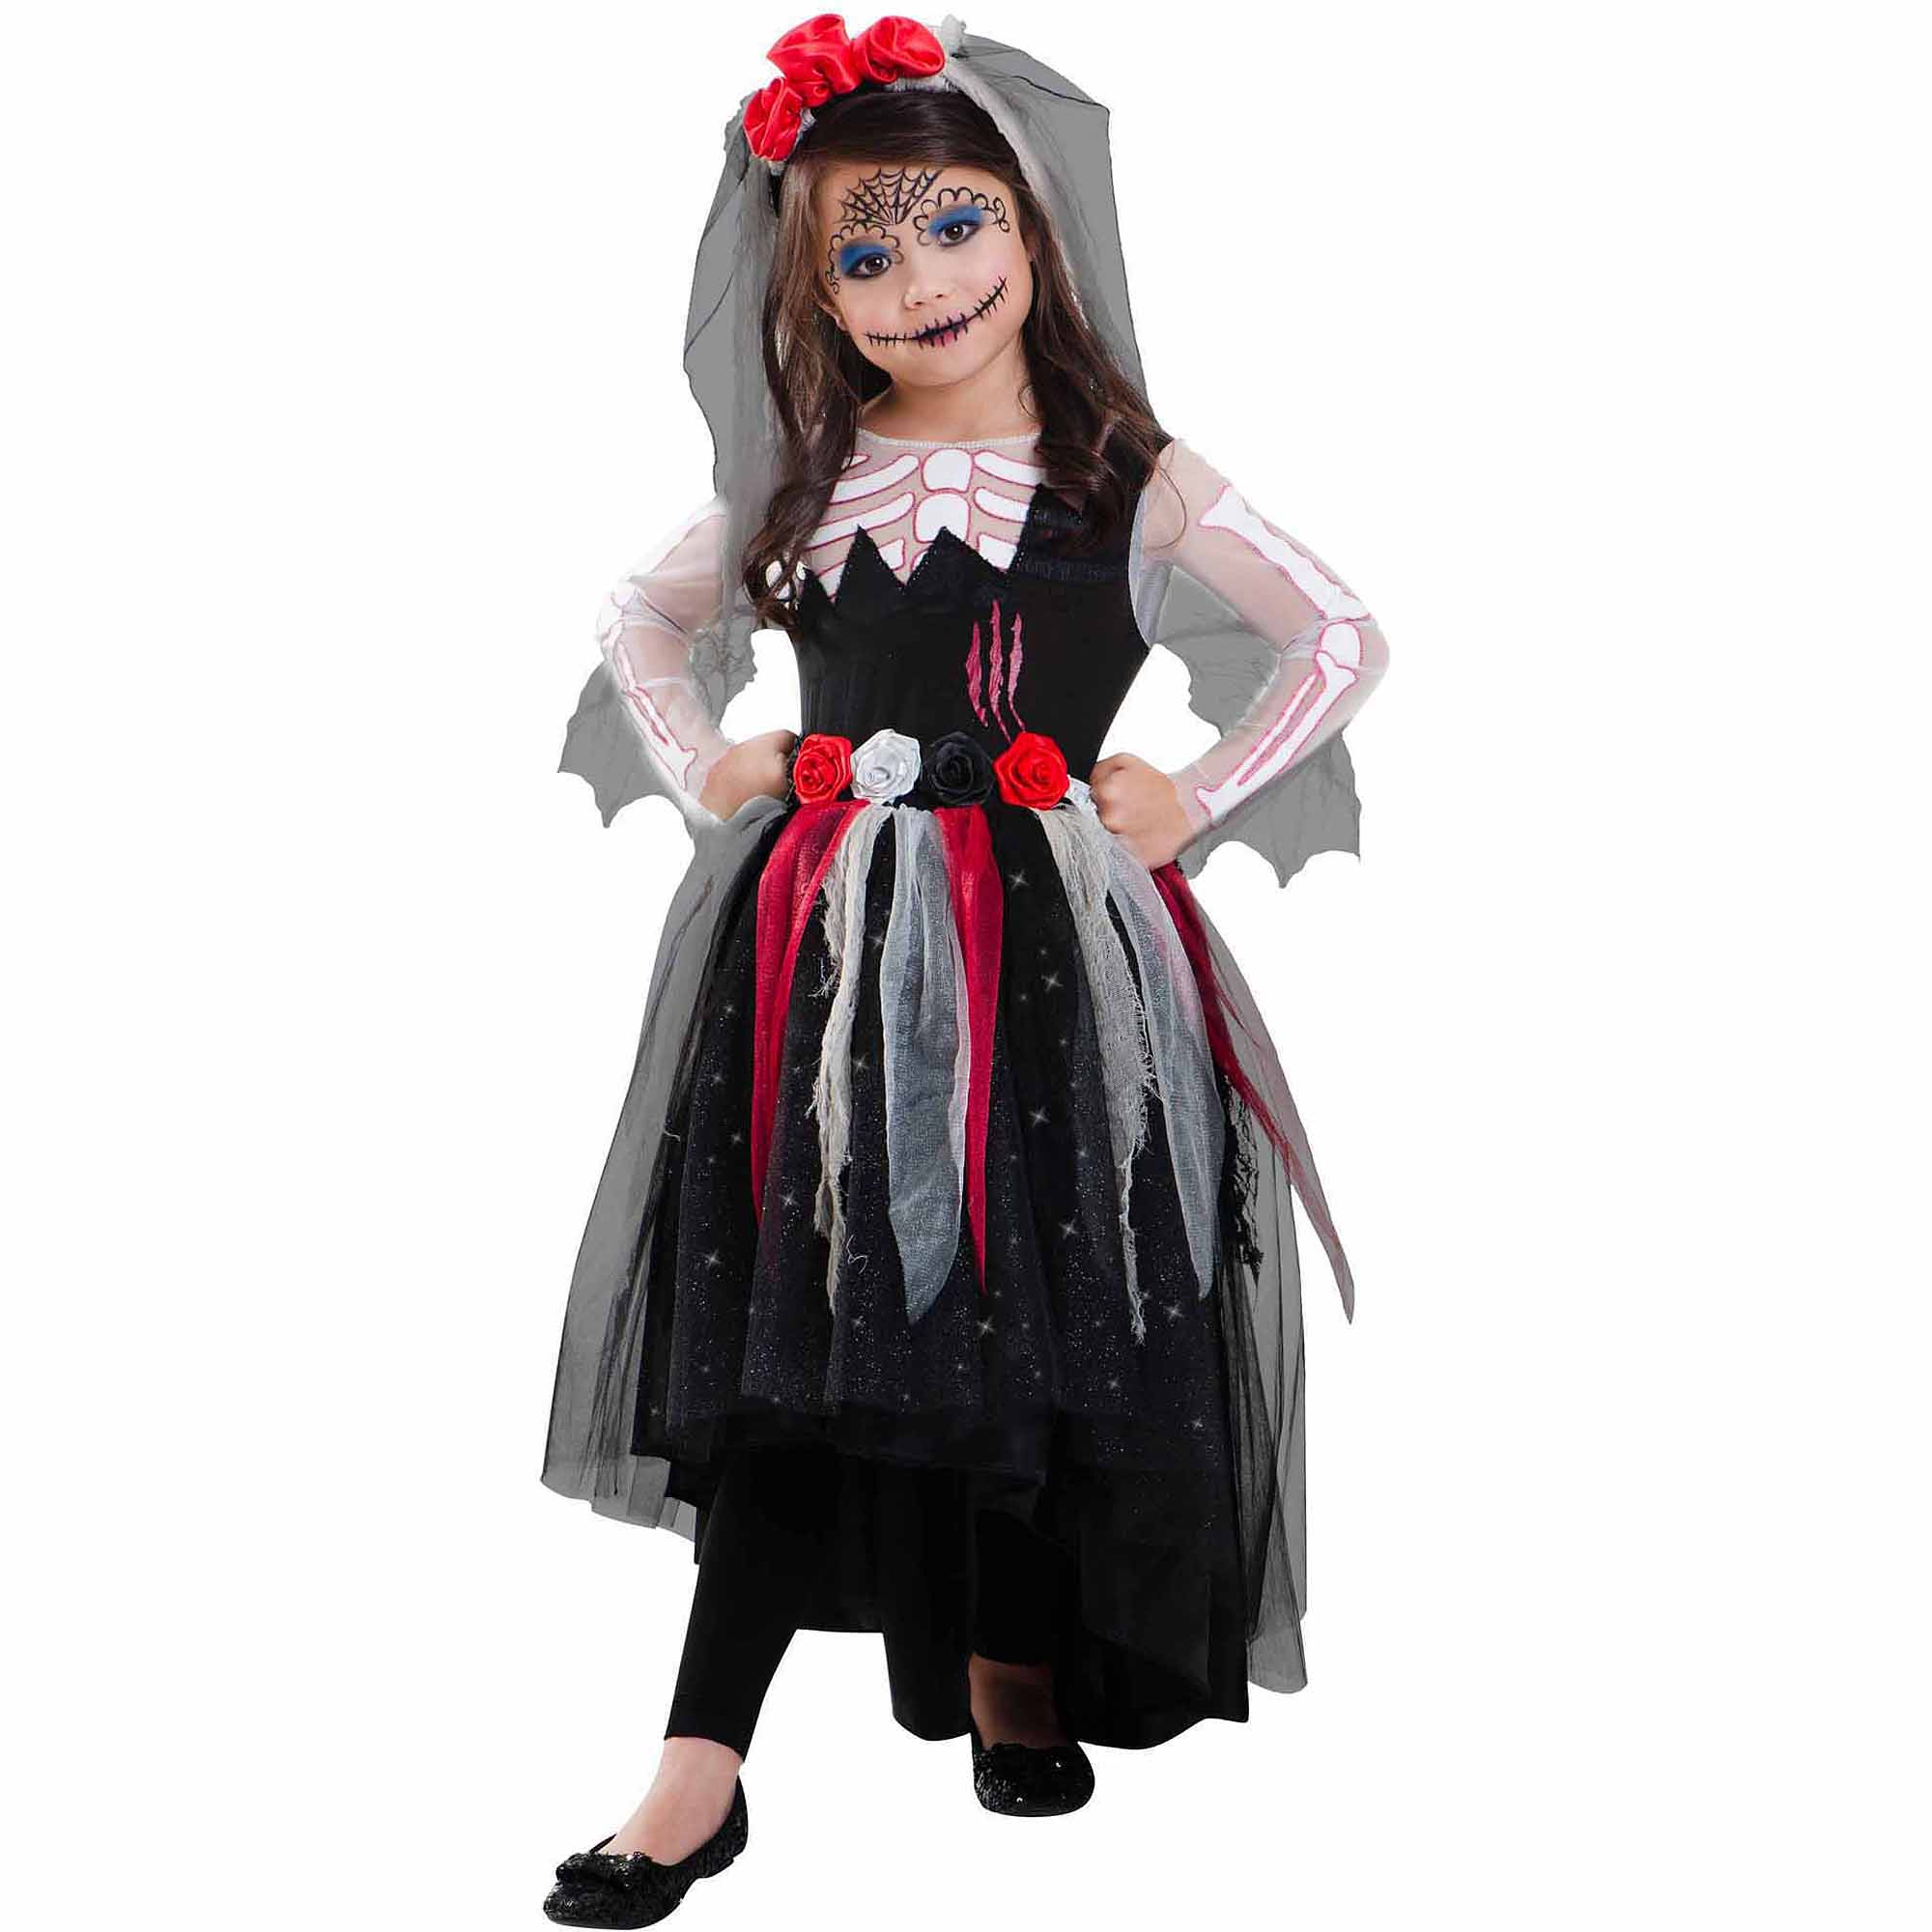 day of the dead child halloween costume walmartcom - Walmart Halloween Costumes For Baby